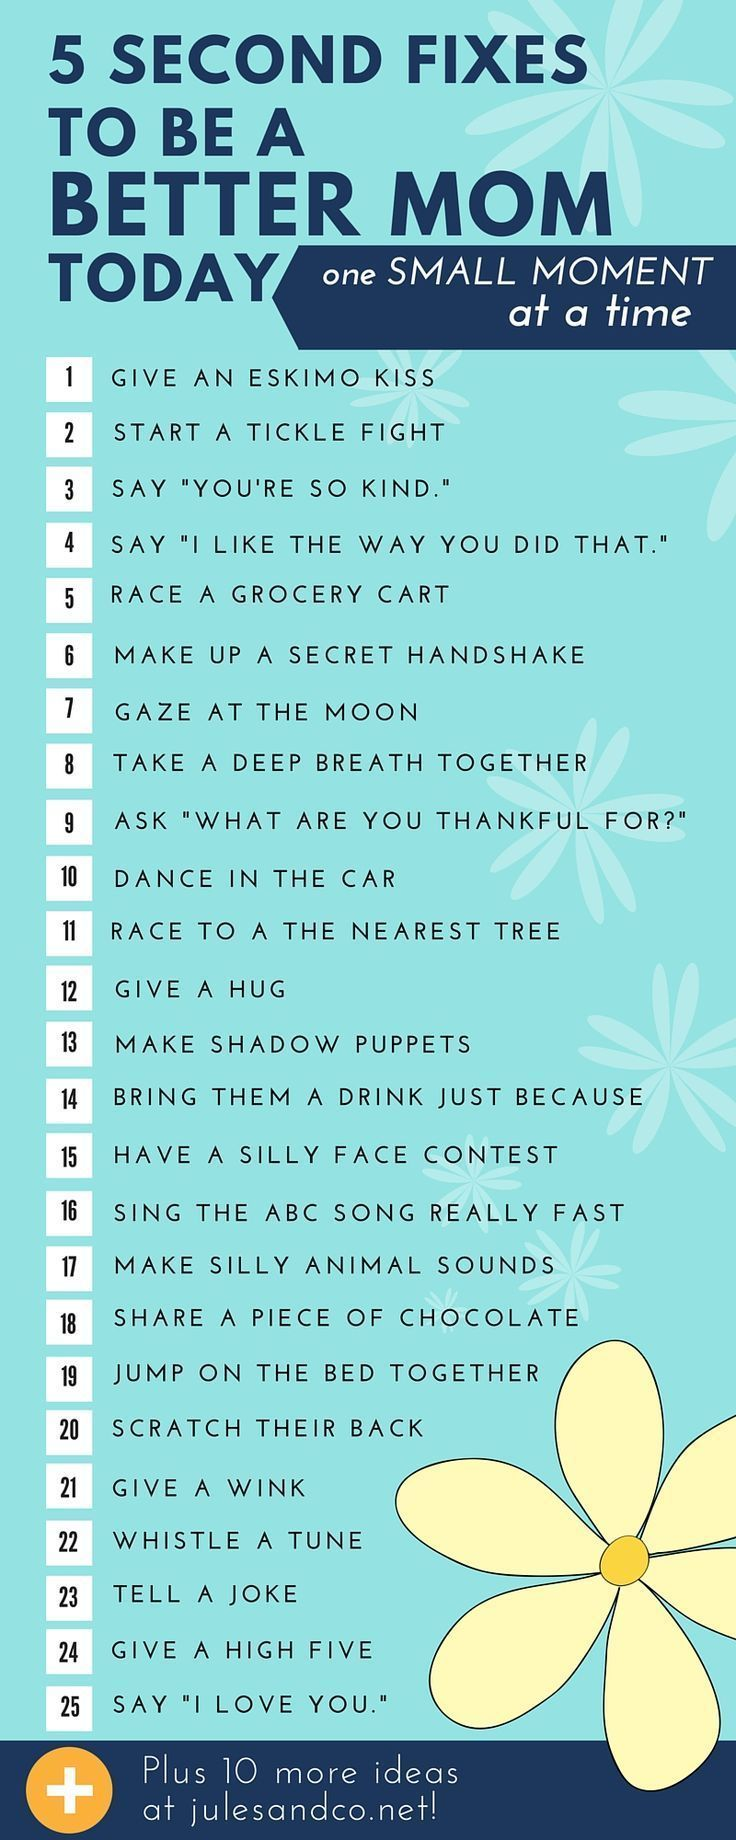 5 Second Fixes to be a Better Mom Today | Pinterest | Small moments ...